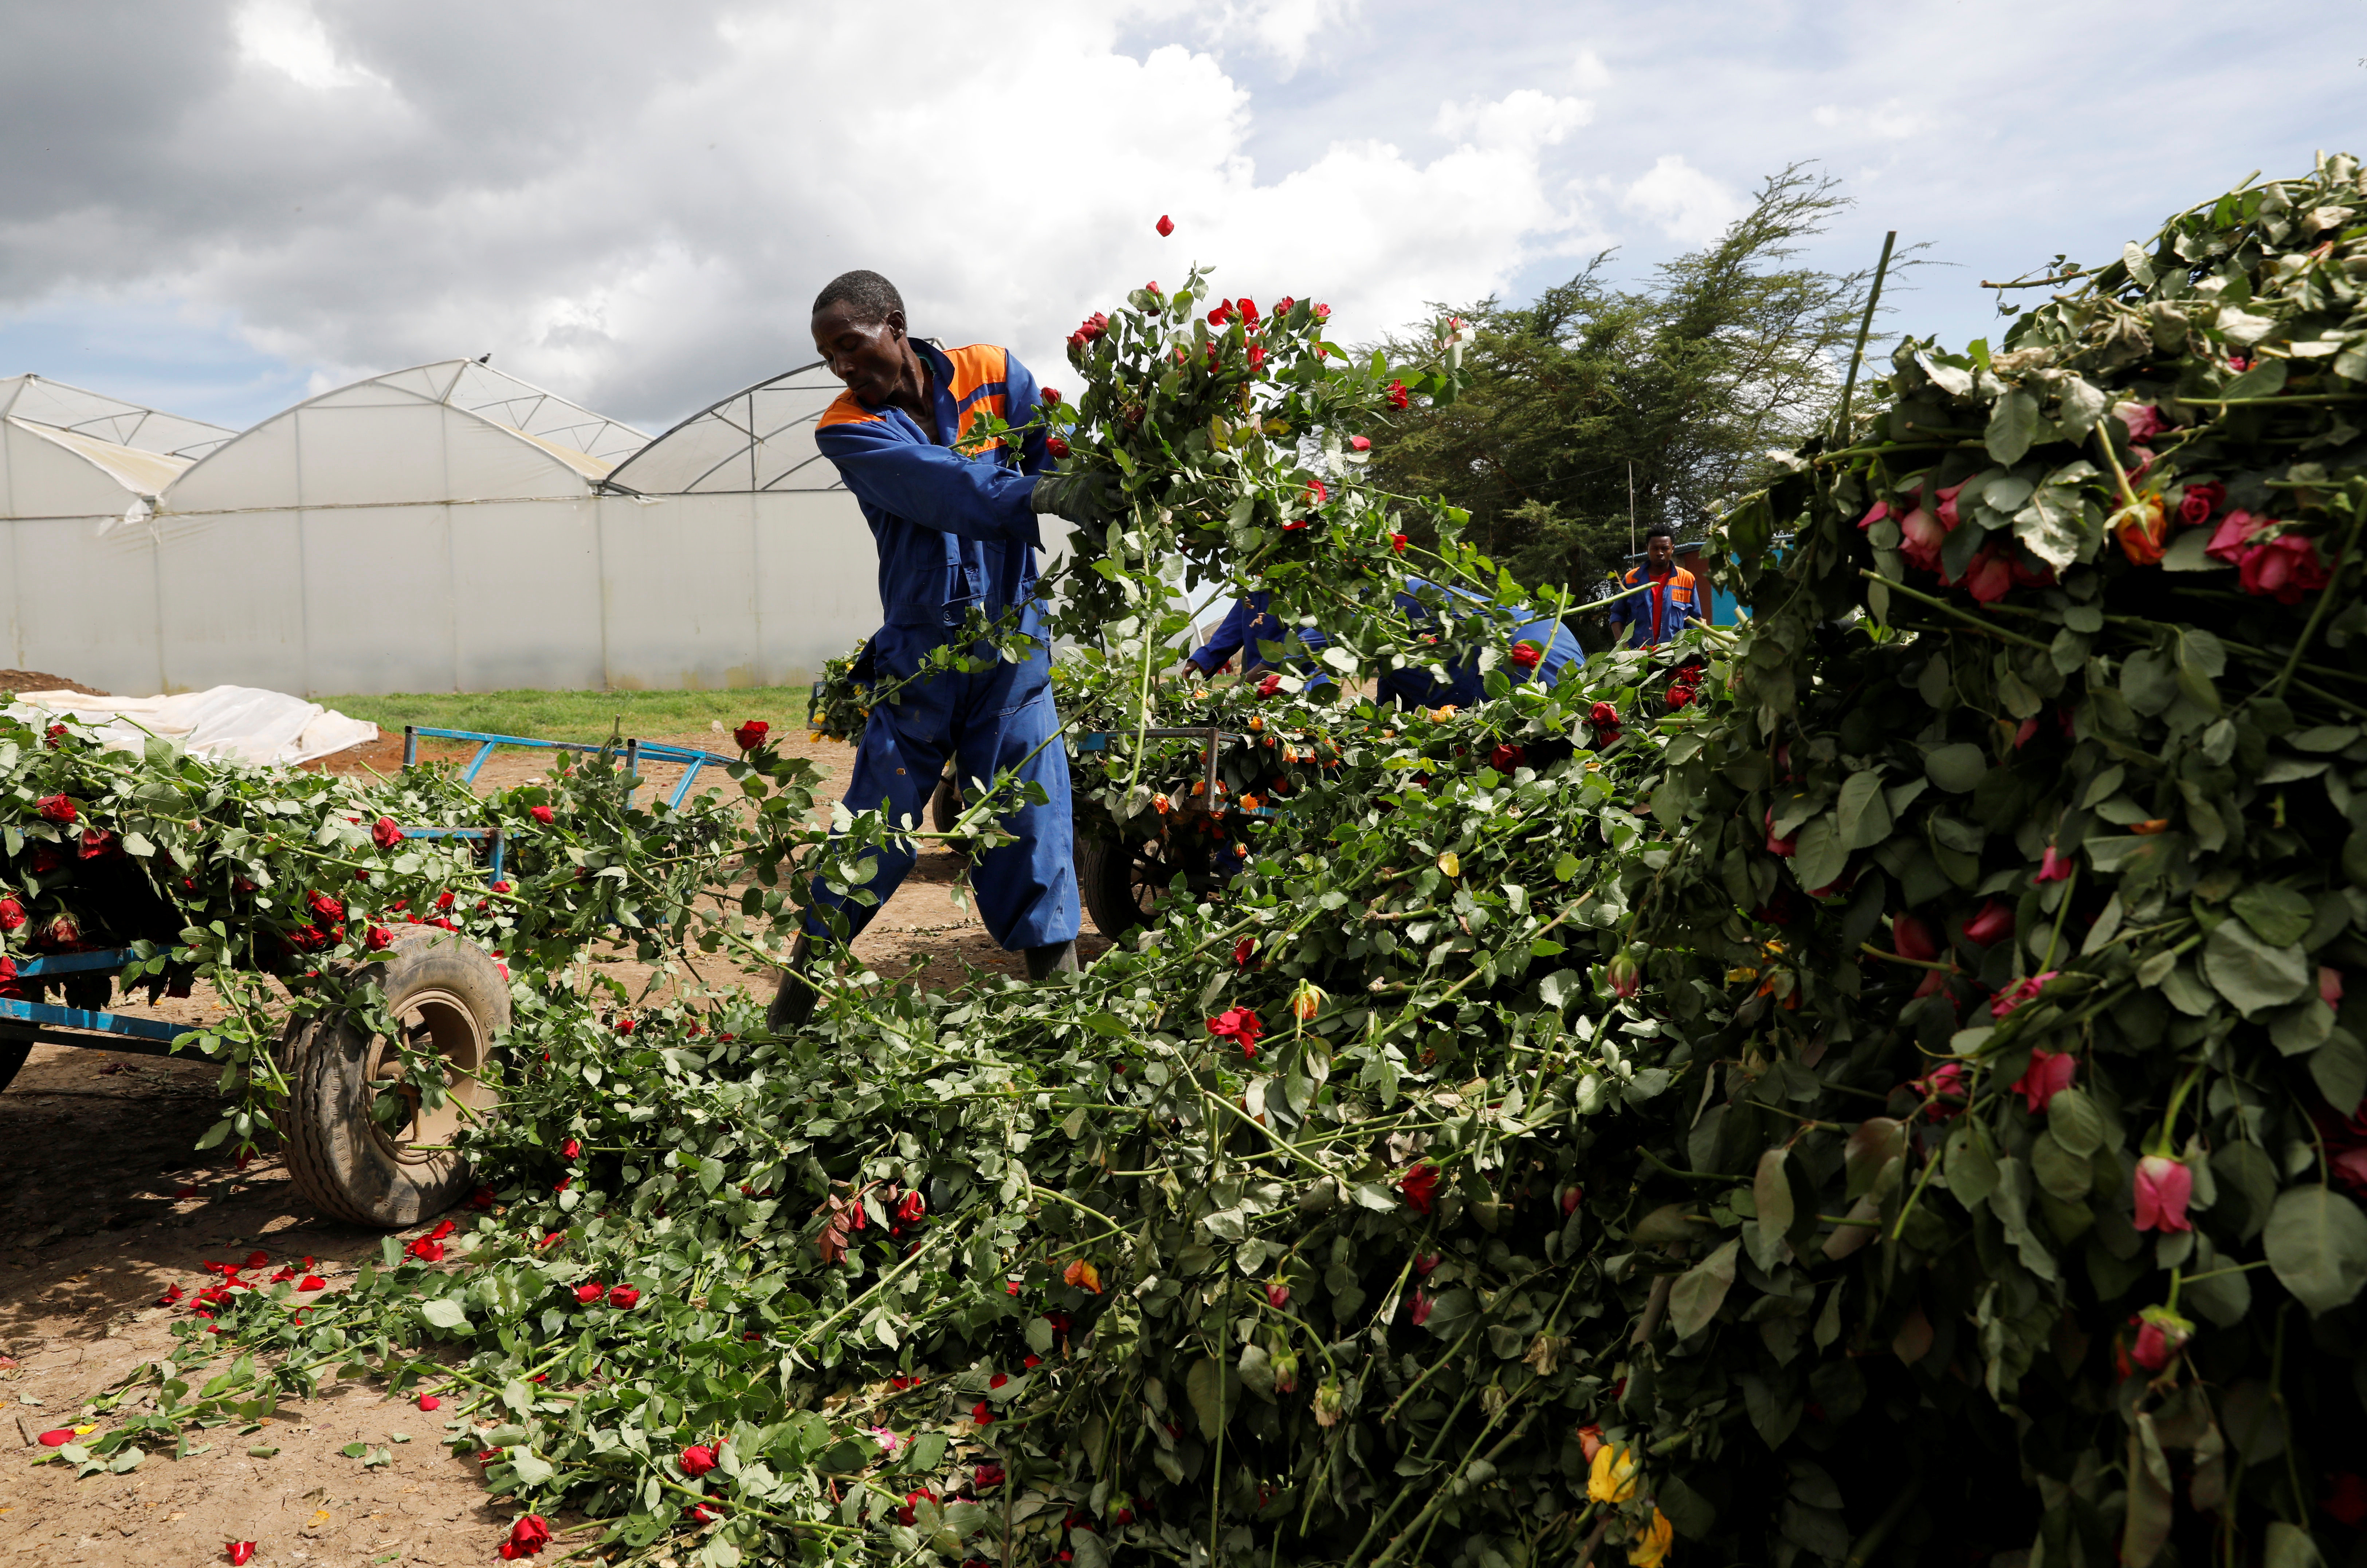 Workers throw away roses that can not be shipped to Europe due of the spread of the coronavirus disease (COVID-19) at the Maridadi flower farm in Naivasha, Kenya, March 19, 2020. REUTERS/Baz Ratner - RC2NNF9RTZIY